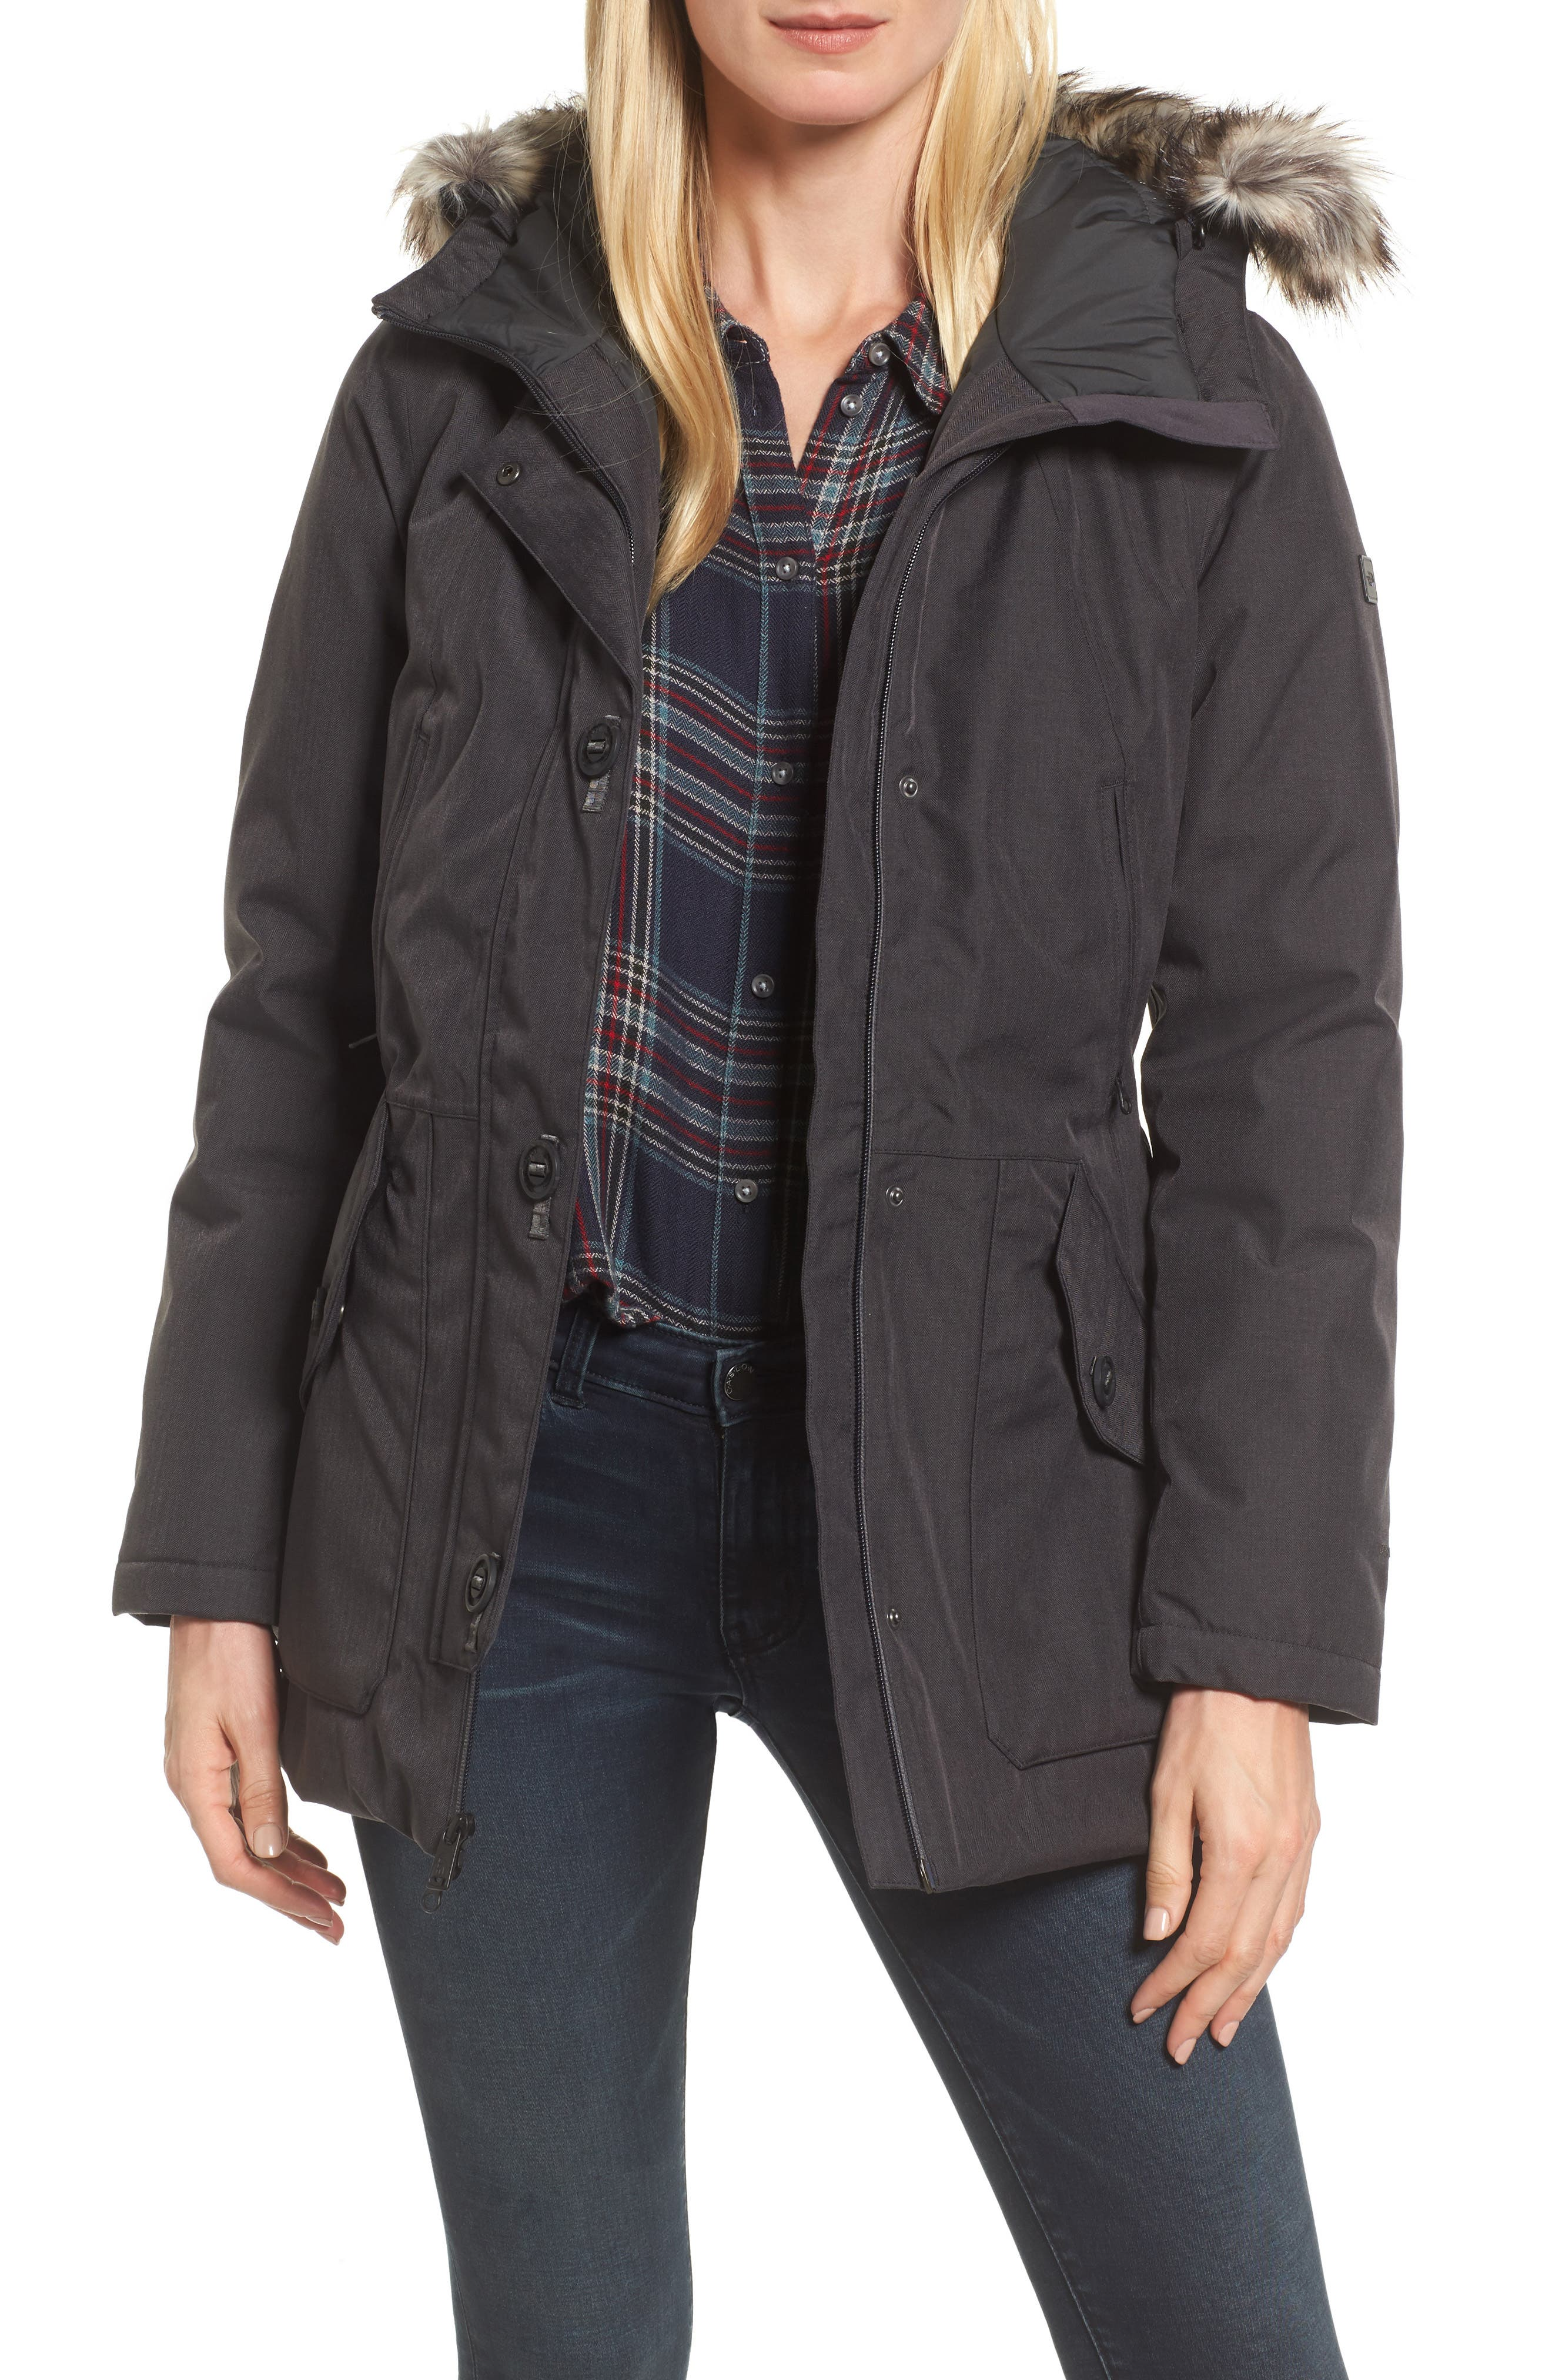 The North Face Mauna Kea Waterproof Insulated Parka with Faux Fur Trim